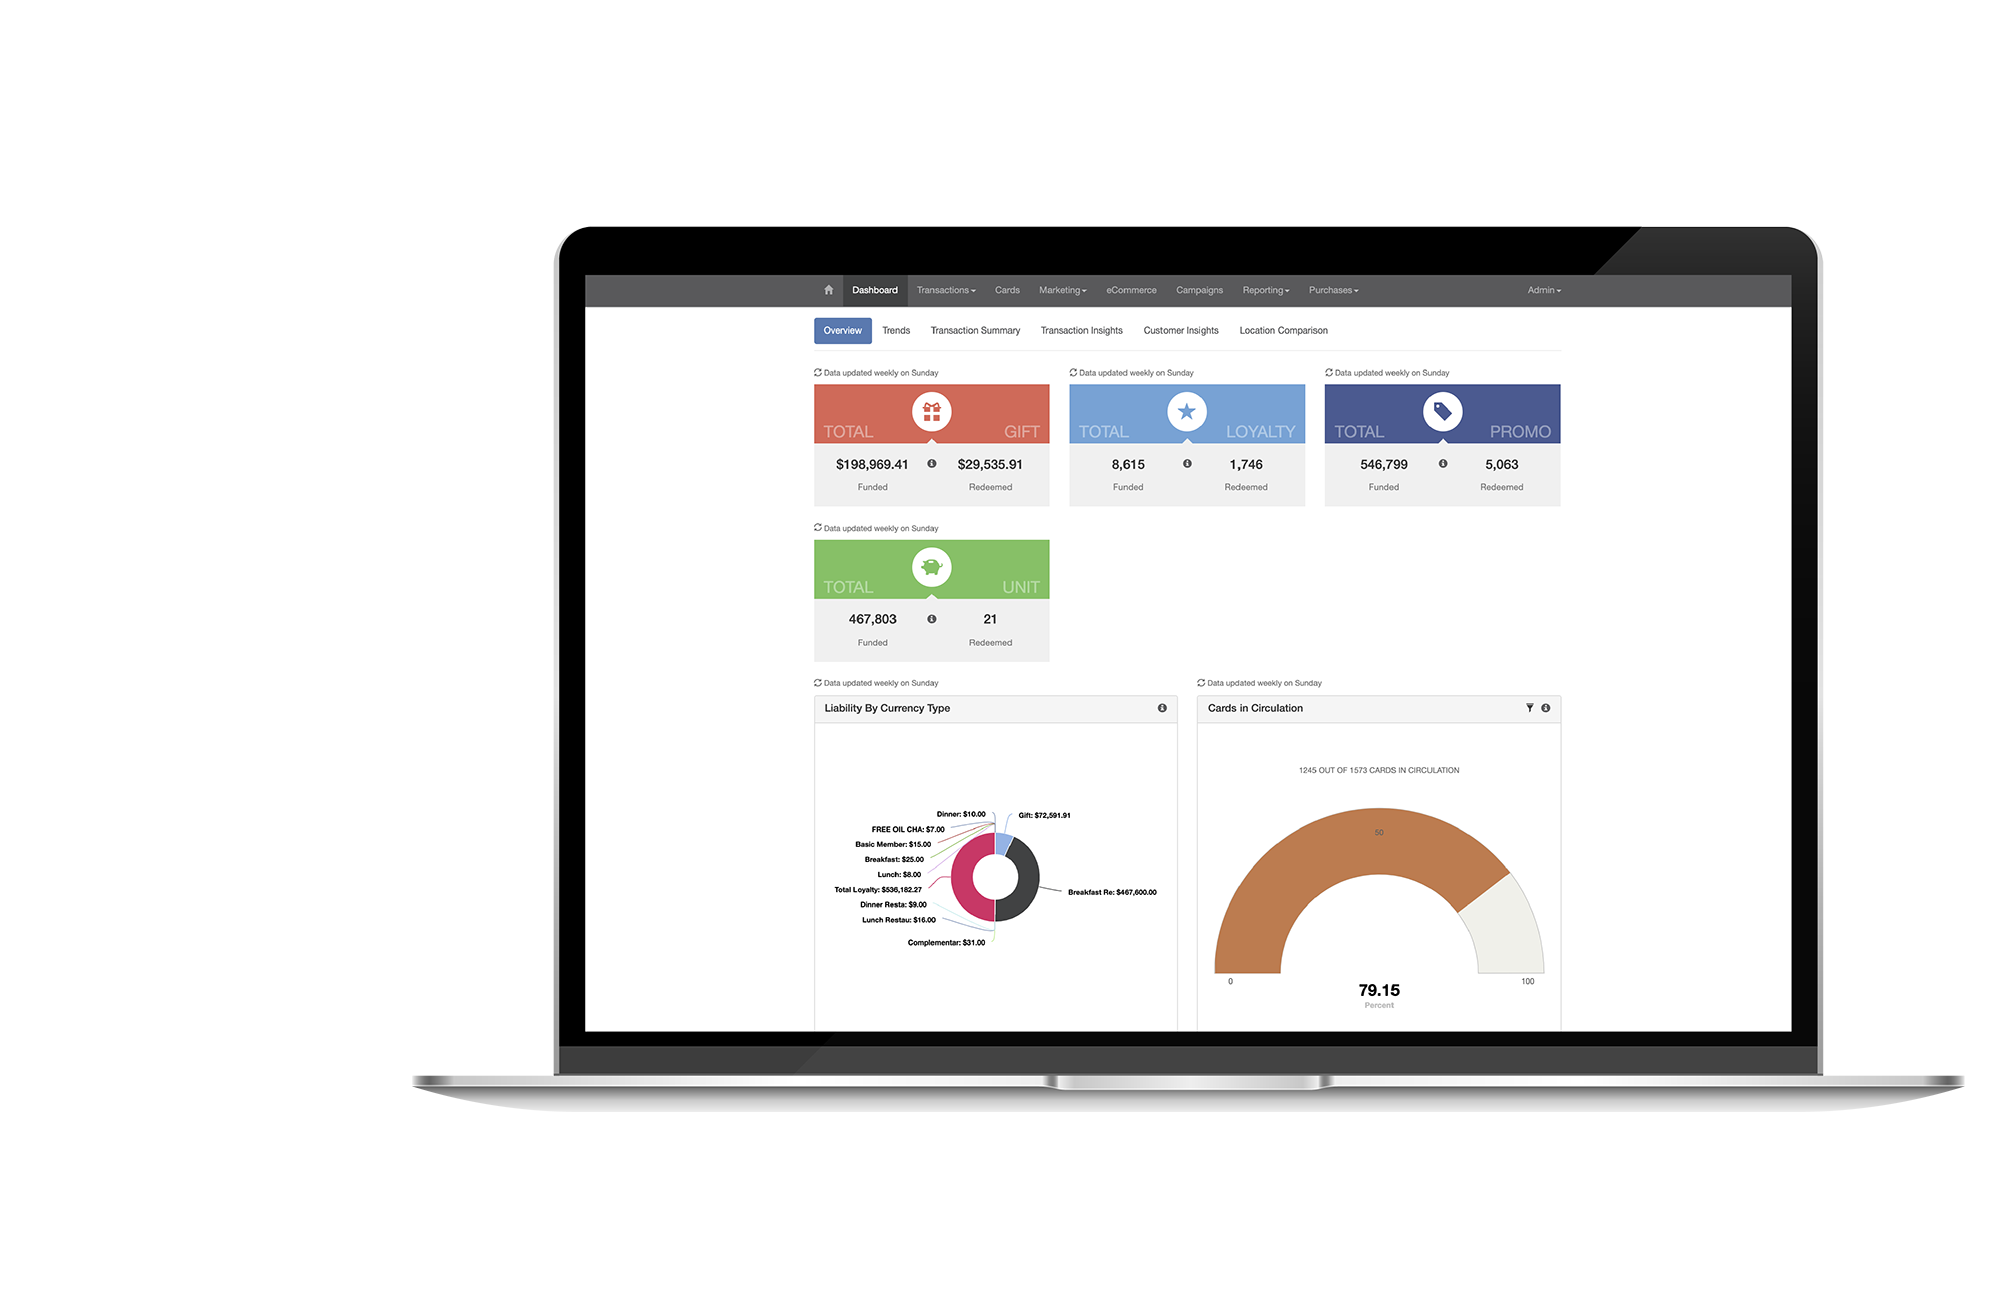 Customer Data Dashboard